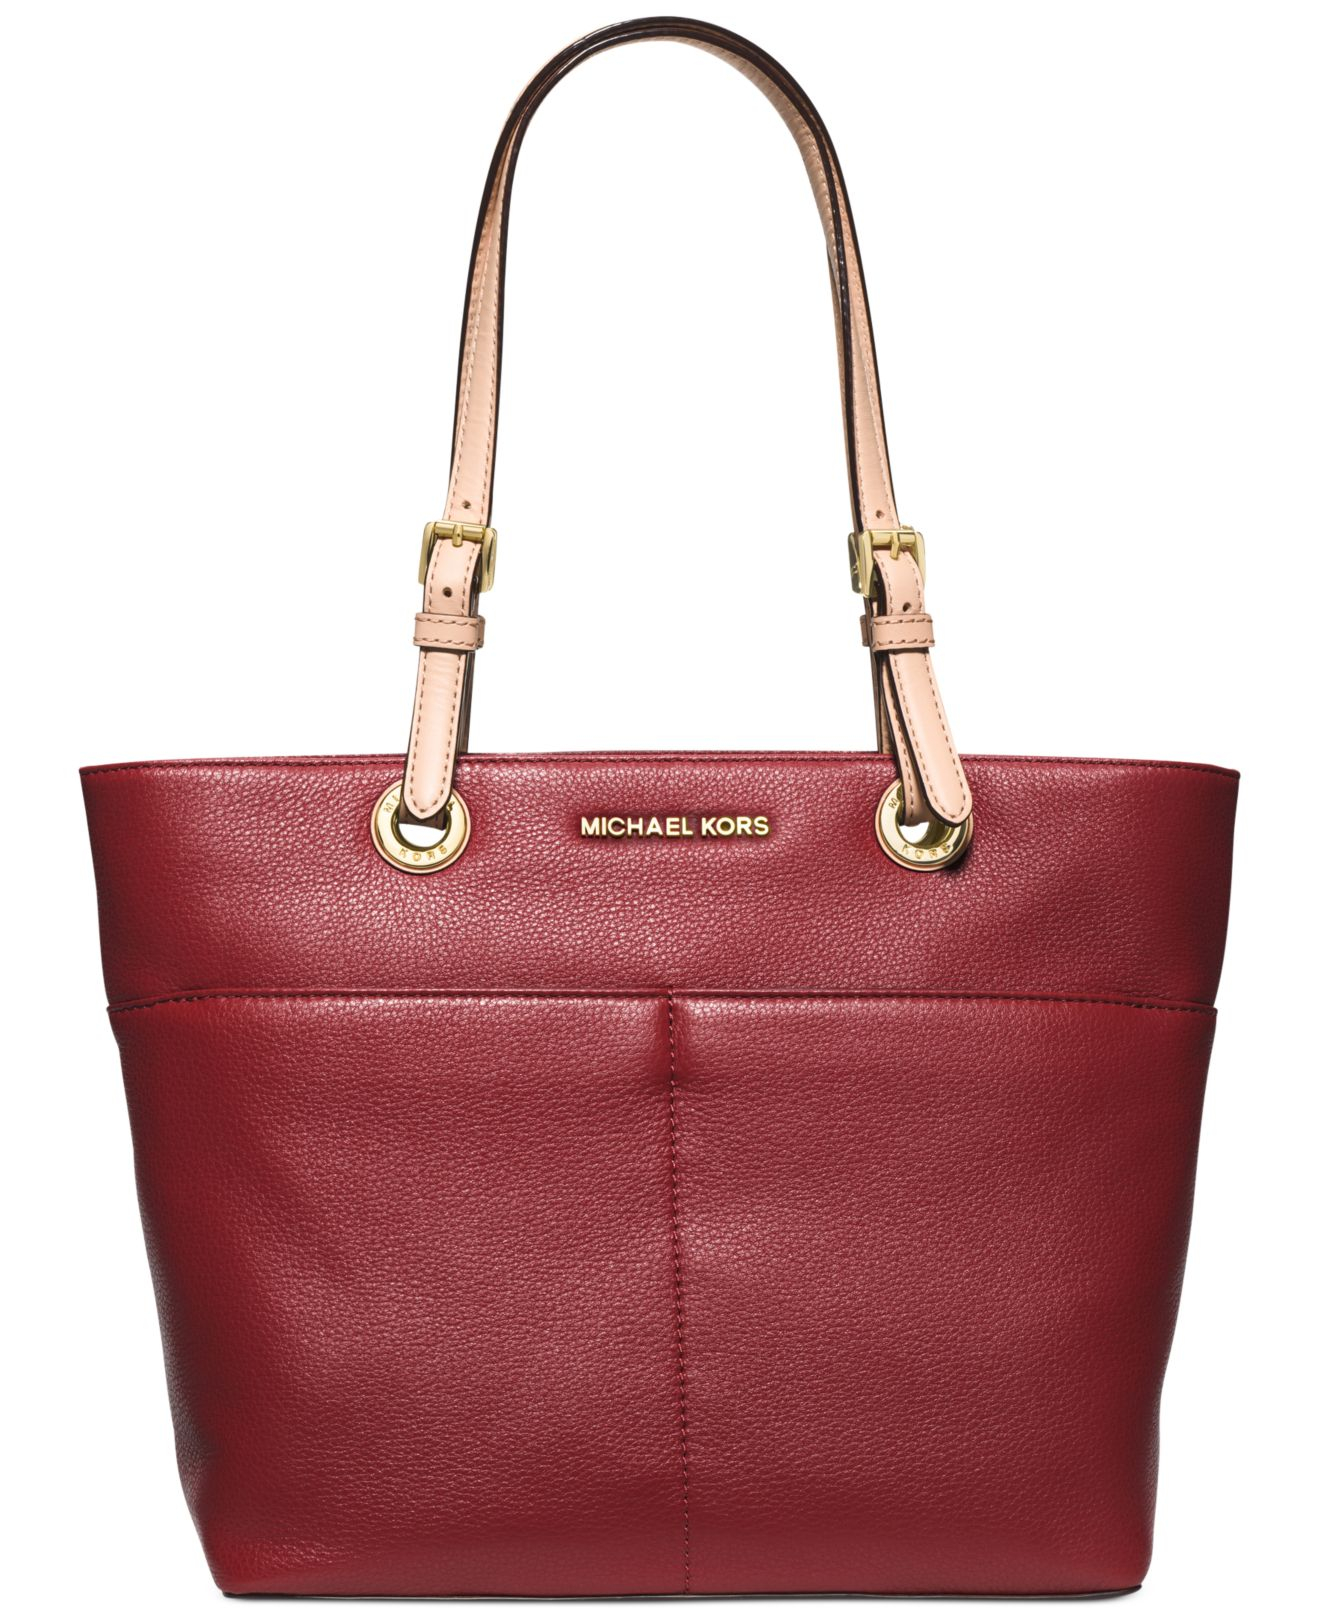 116b02618cff Top Zip Tote Michael Kors | Stanford Center for Opportunity Policy ...